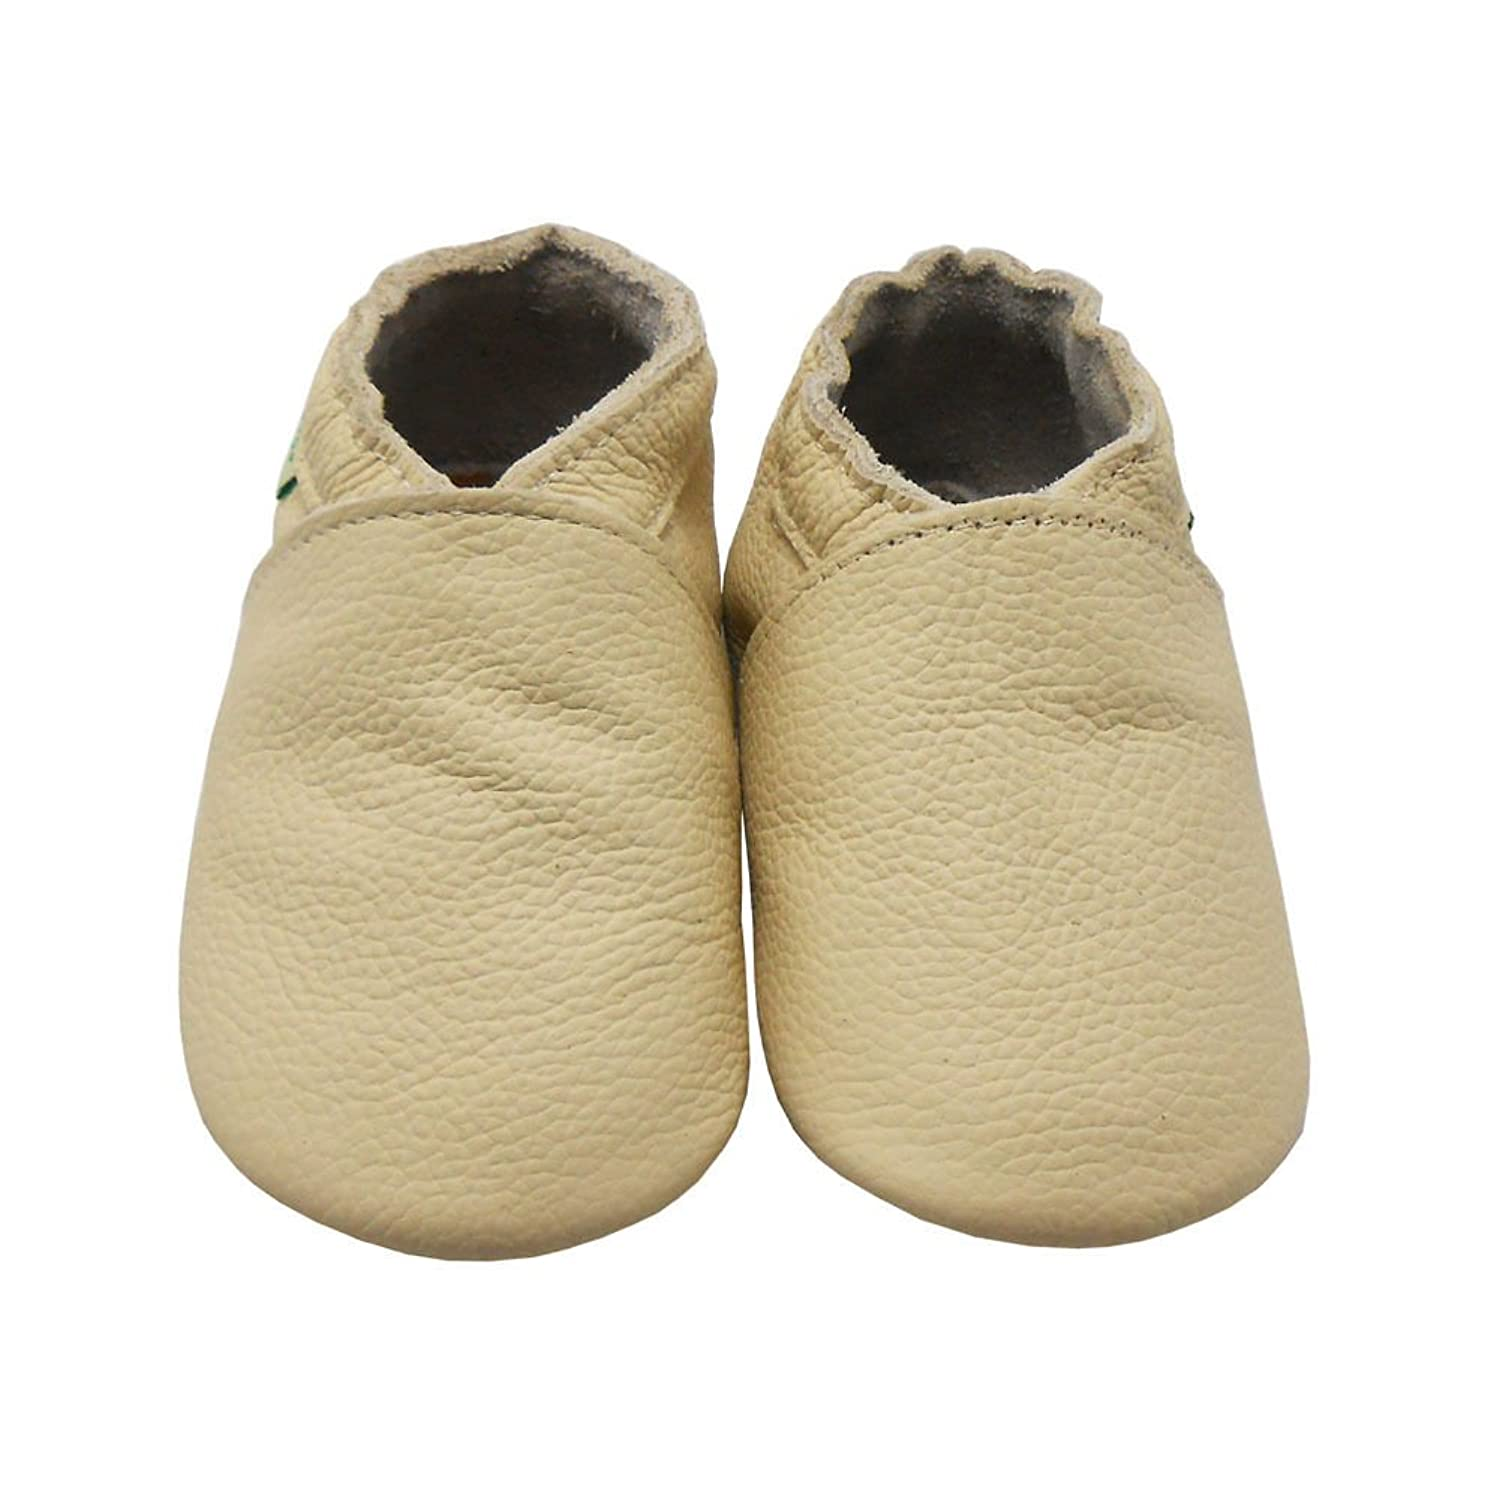 Baby Shoes For Narrow Feet Newest and Cutest Baby Clothing